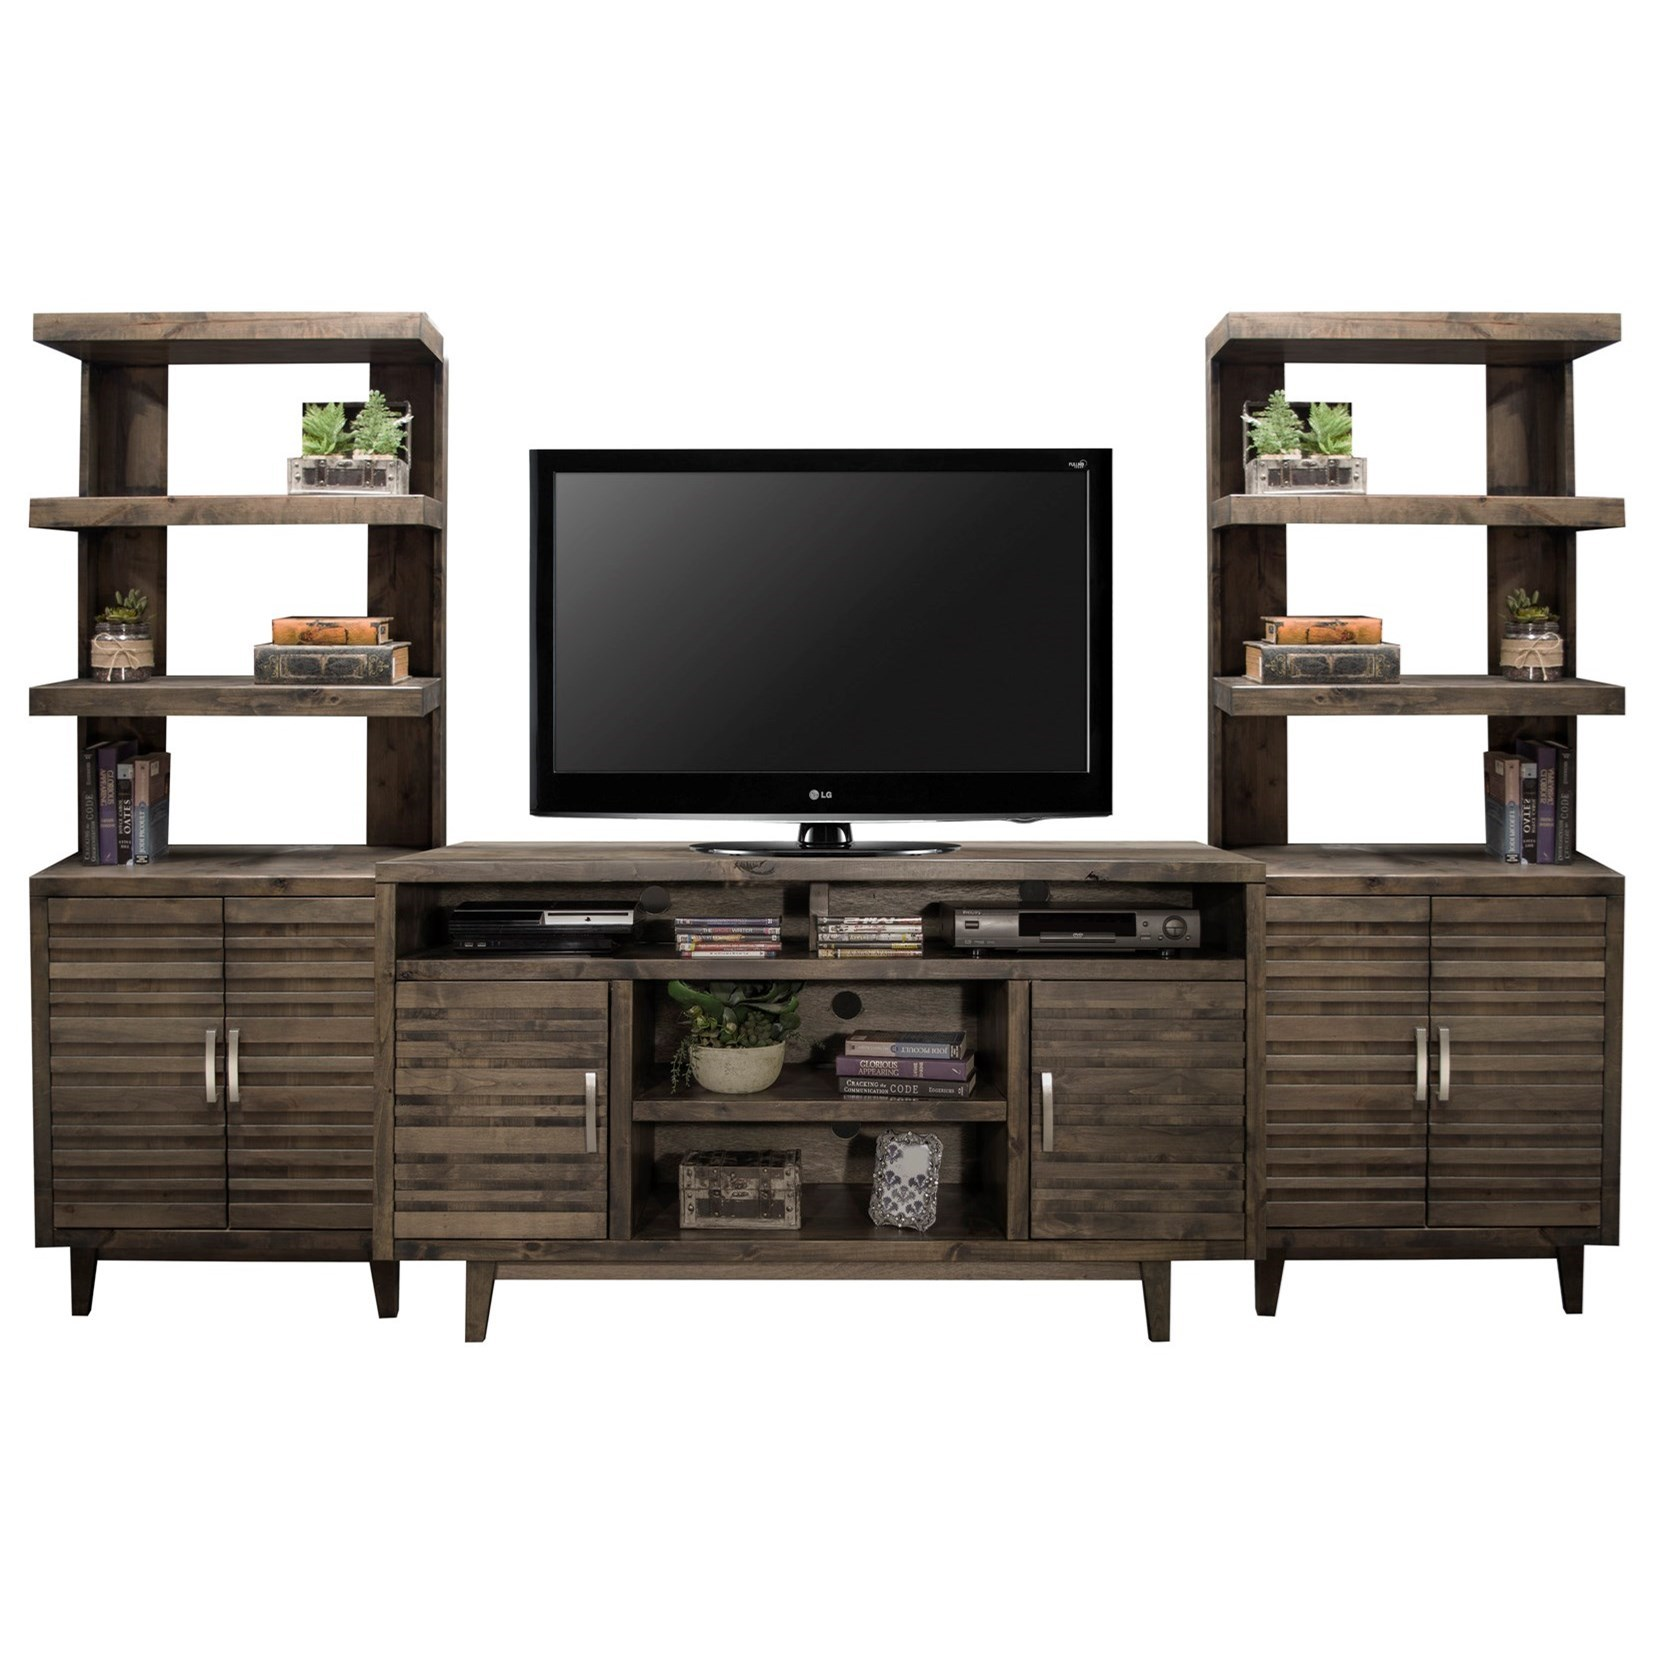 Avondale Entertainment Wall Console by Legends Furniture at Darvin Furniture